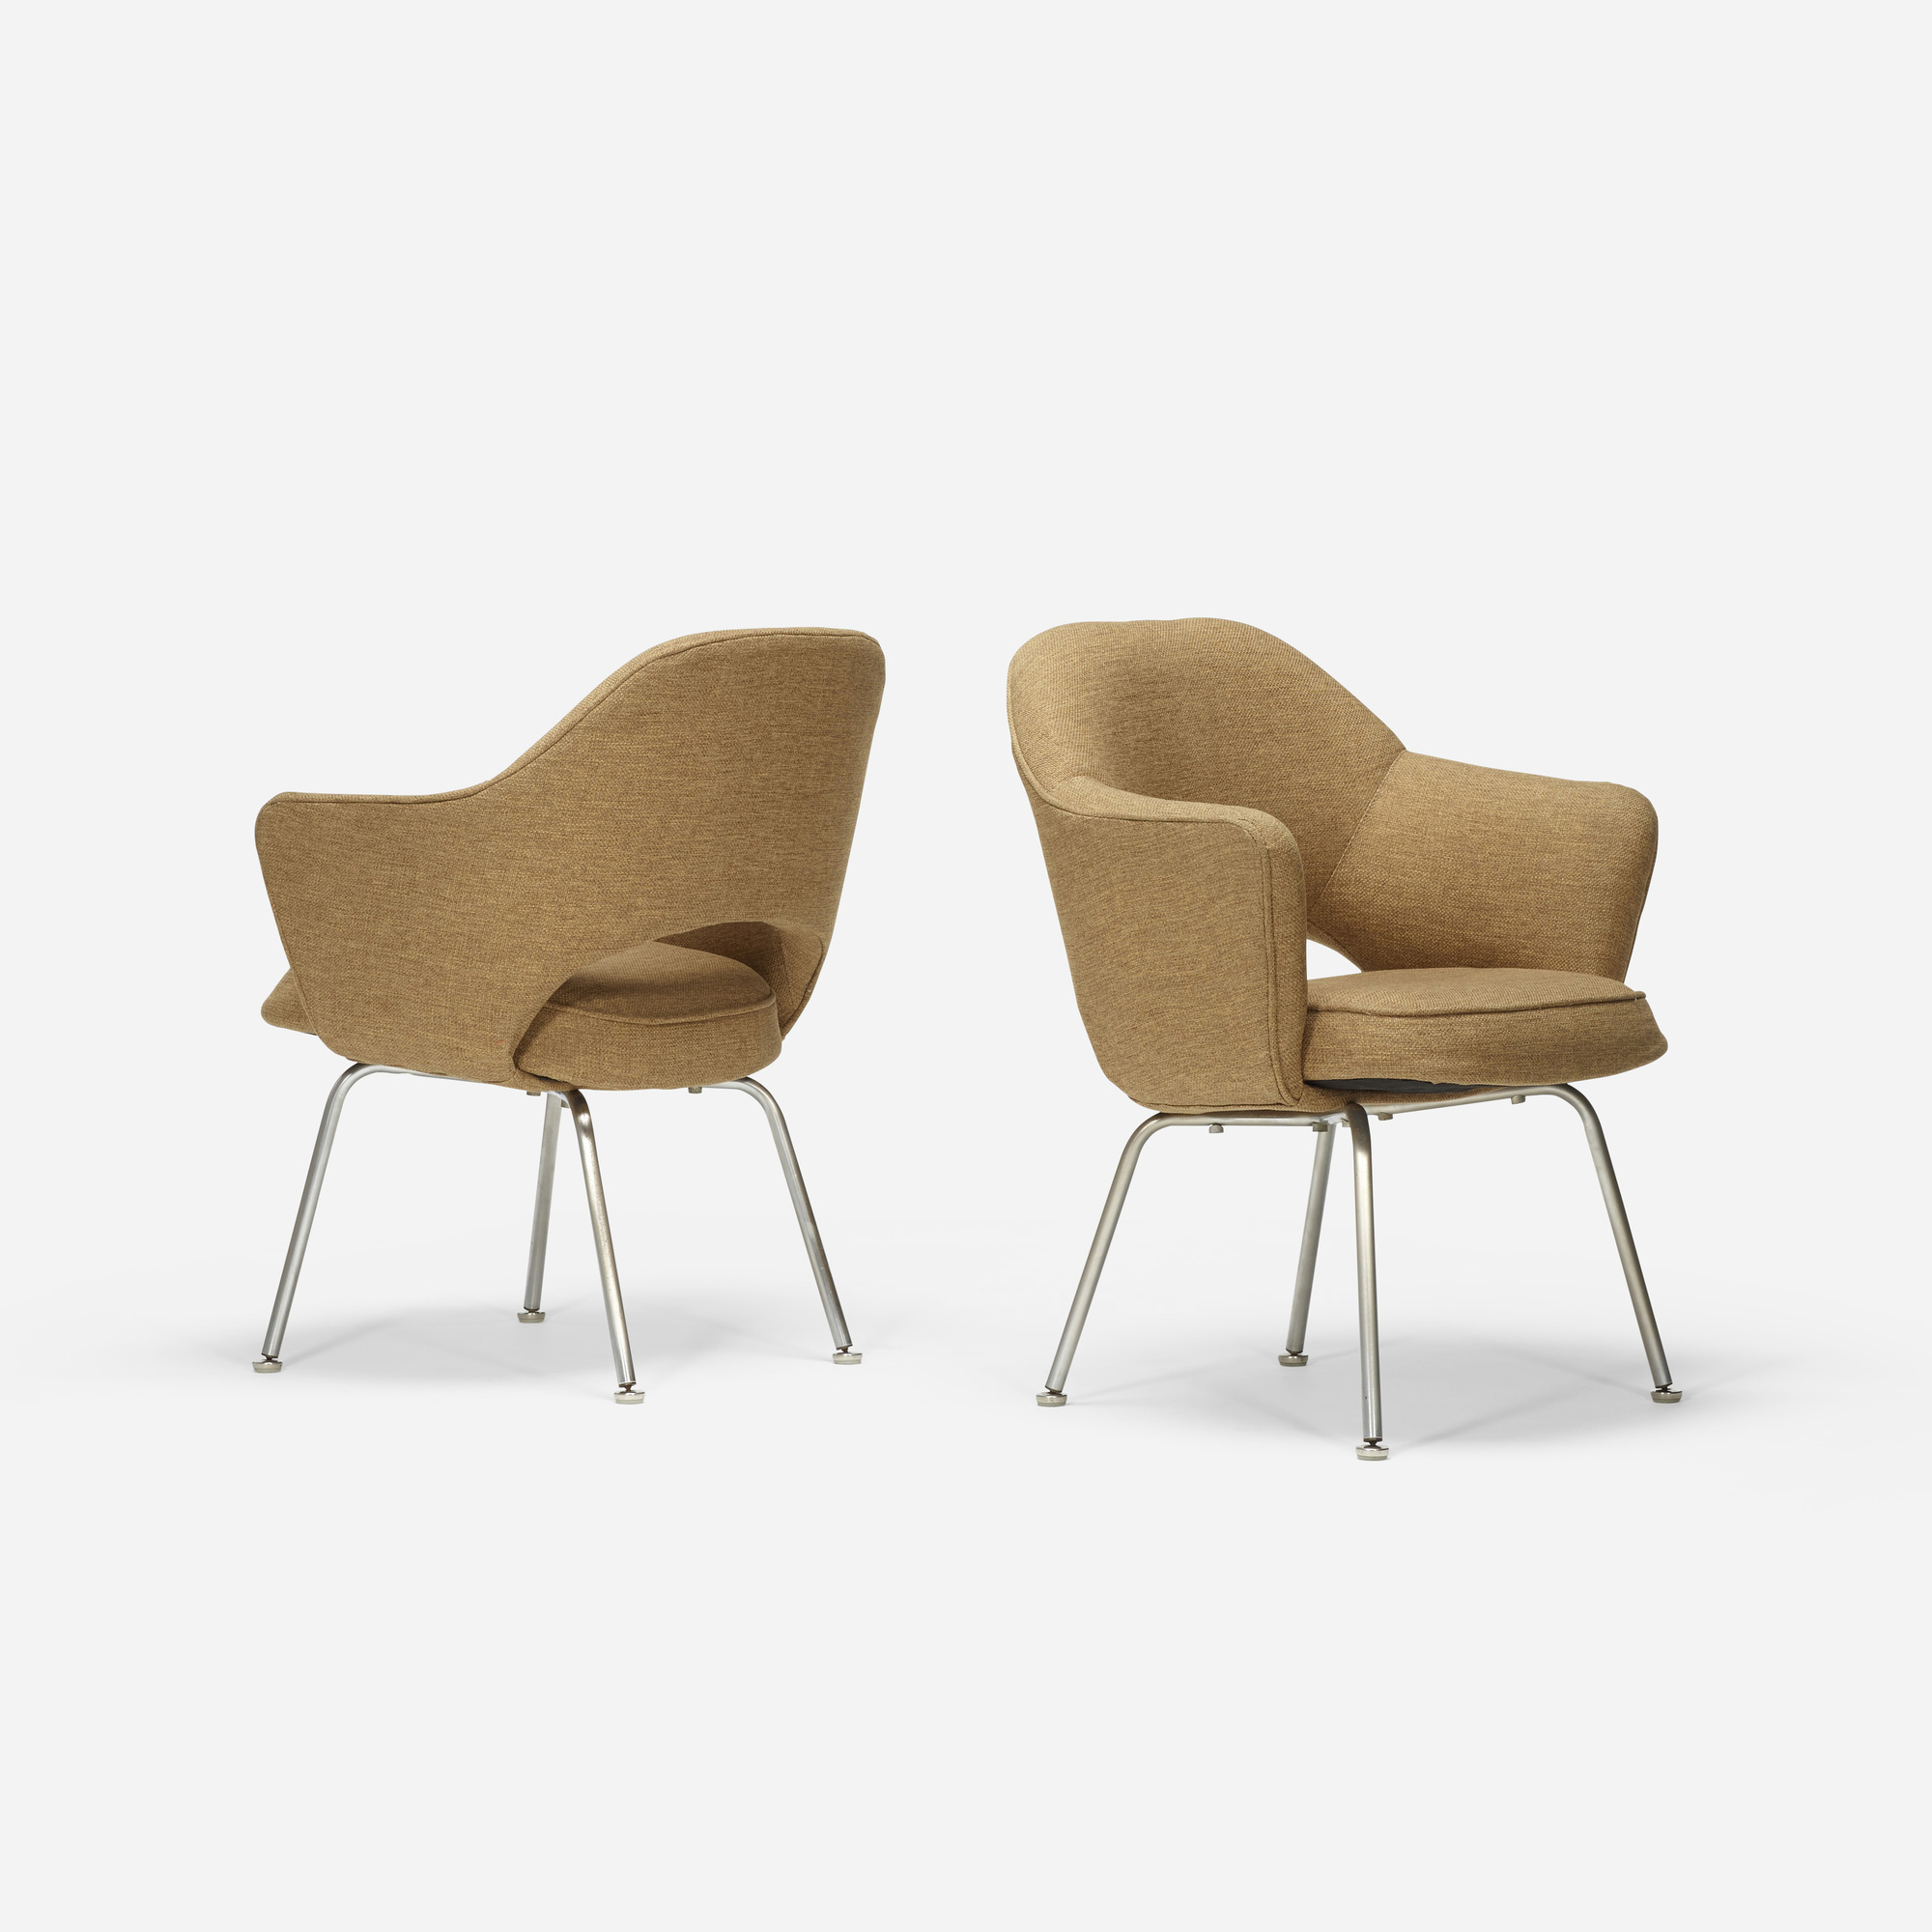 705: Eero Saarinen / dining chairs, pair (1 of 2)